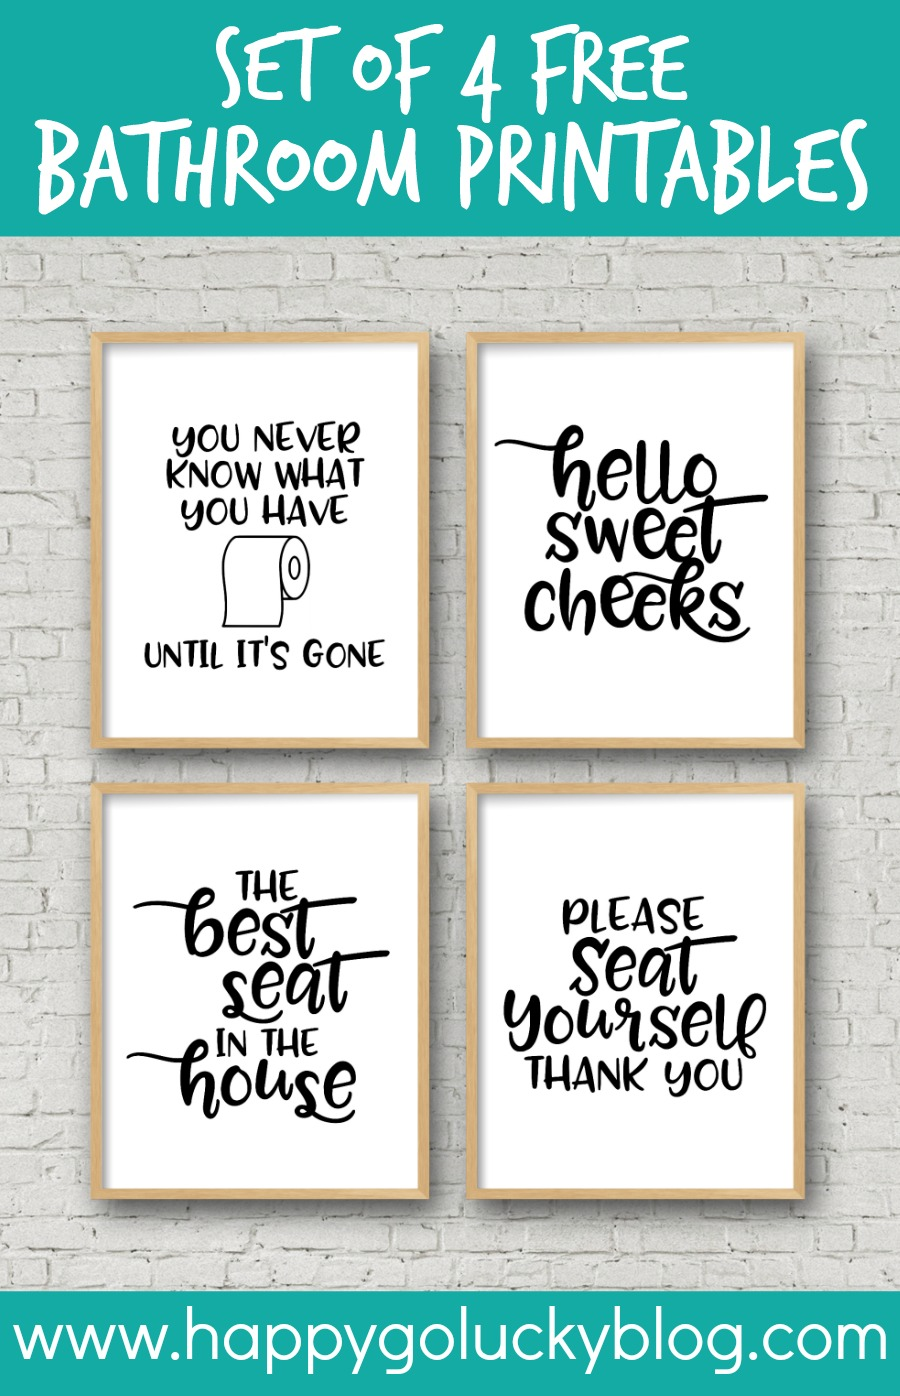 photograph about Funny Bathroom Signs Printable named Preset of 4 Printable Toilet Symptoms - Delighted-Shift-Fortunate